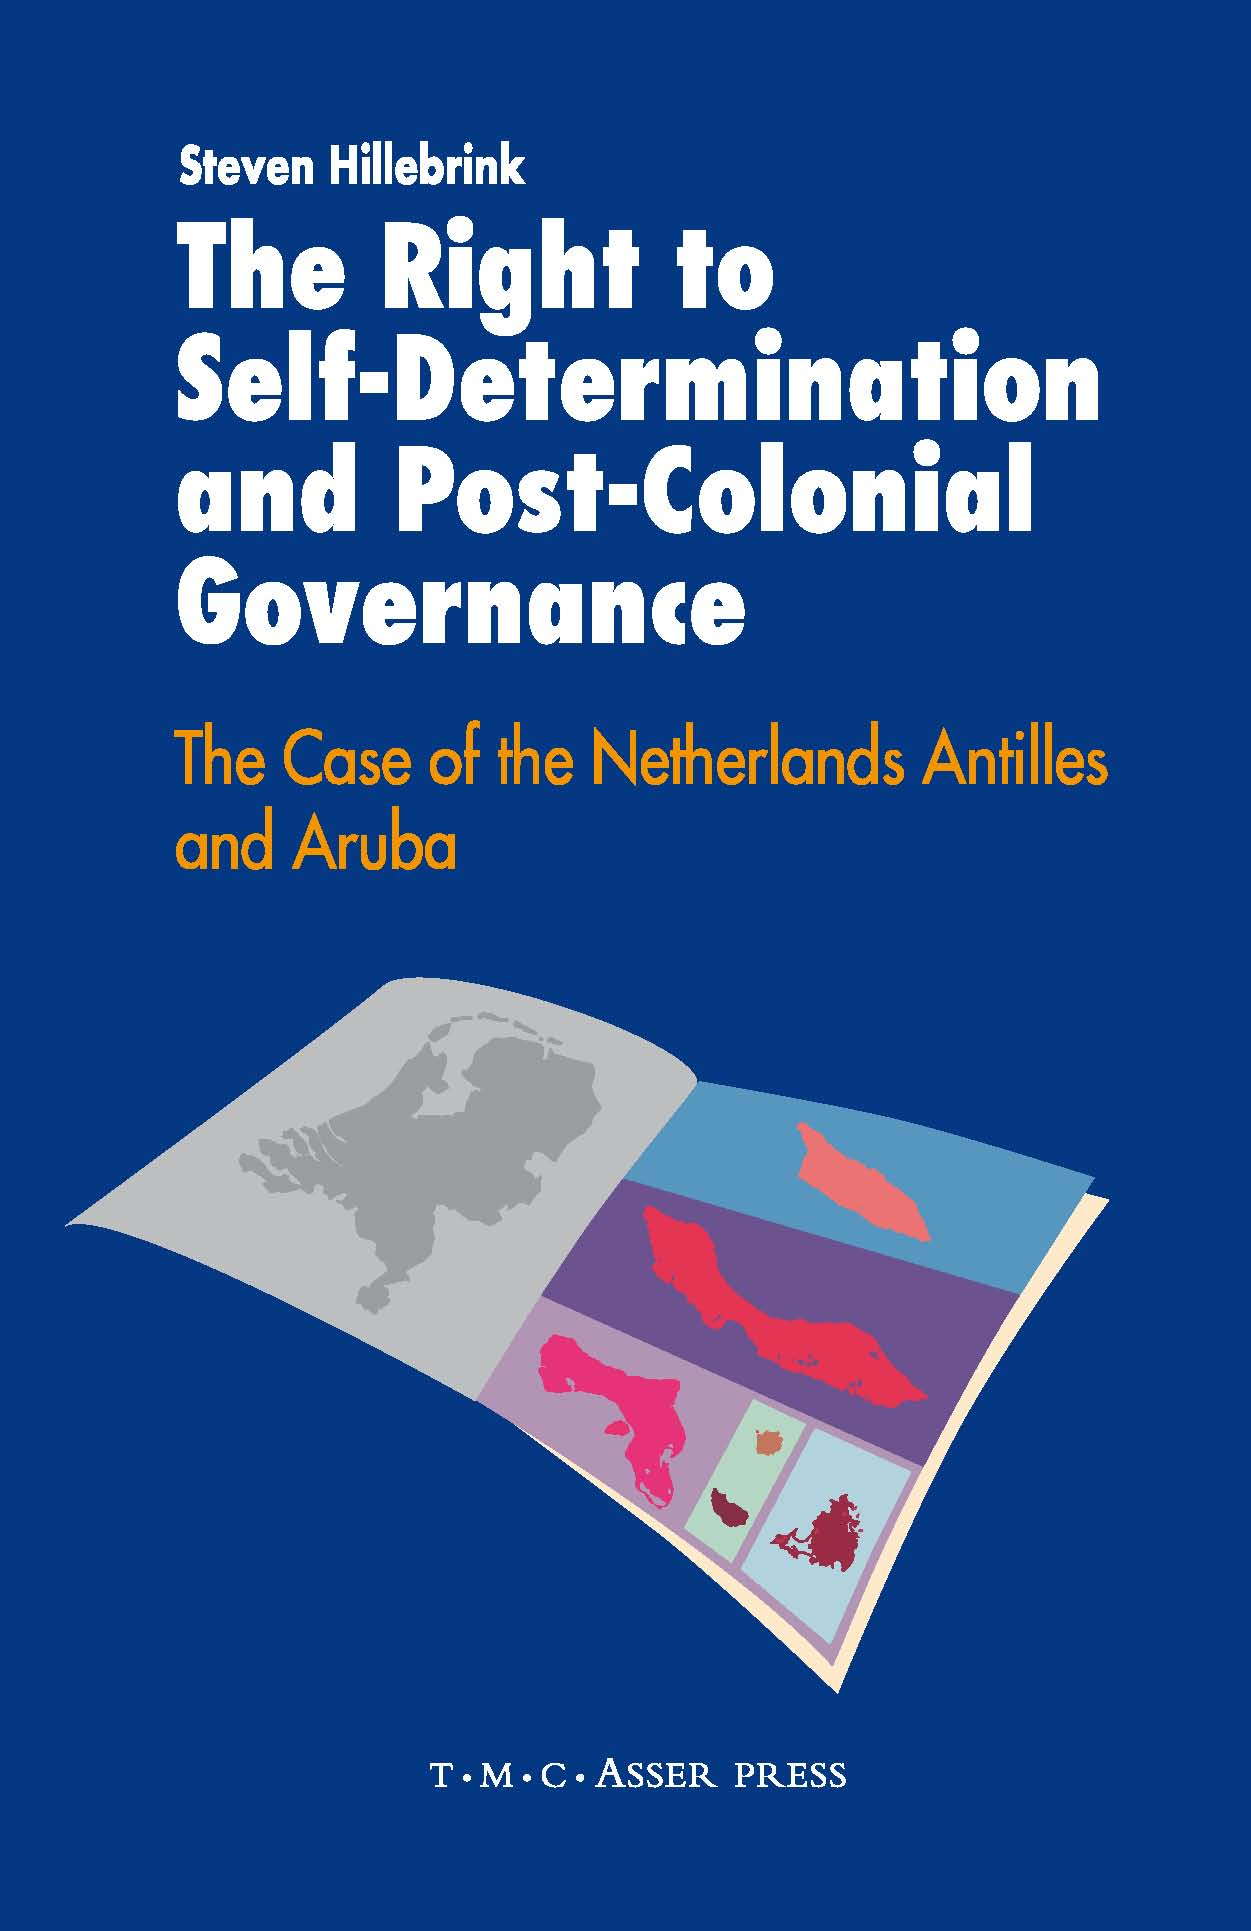 The Right to Self-Determination and Post-Colonial Governance - The Case of the Netherlands Antilles and Aruba